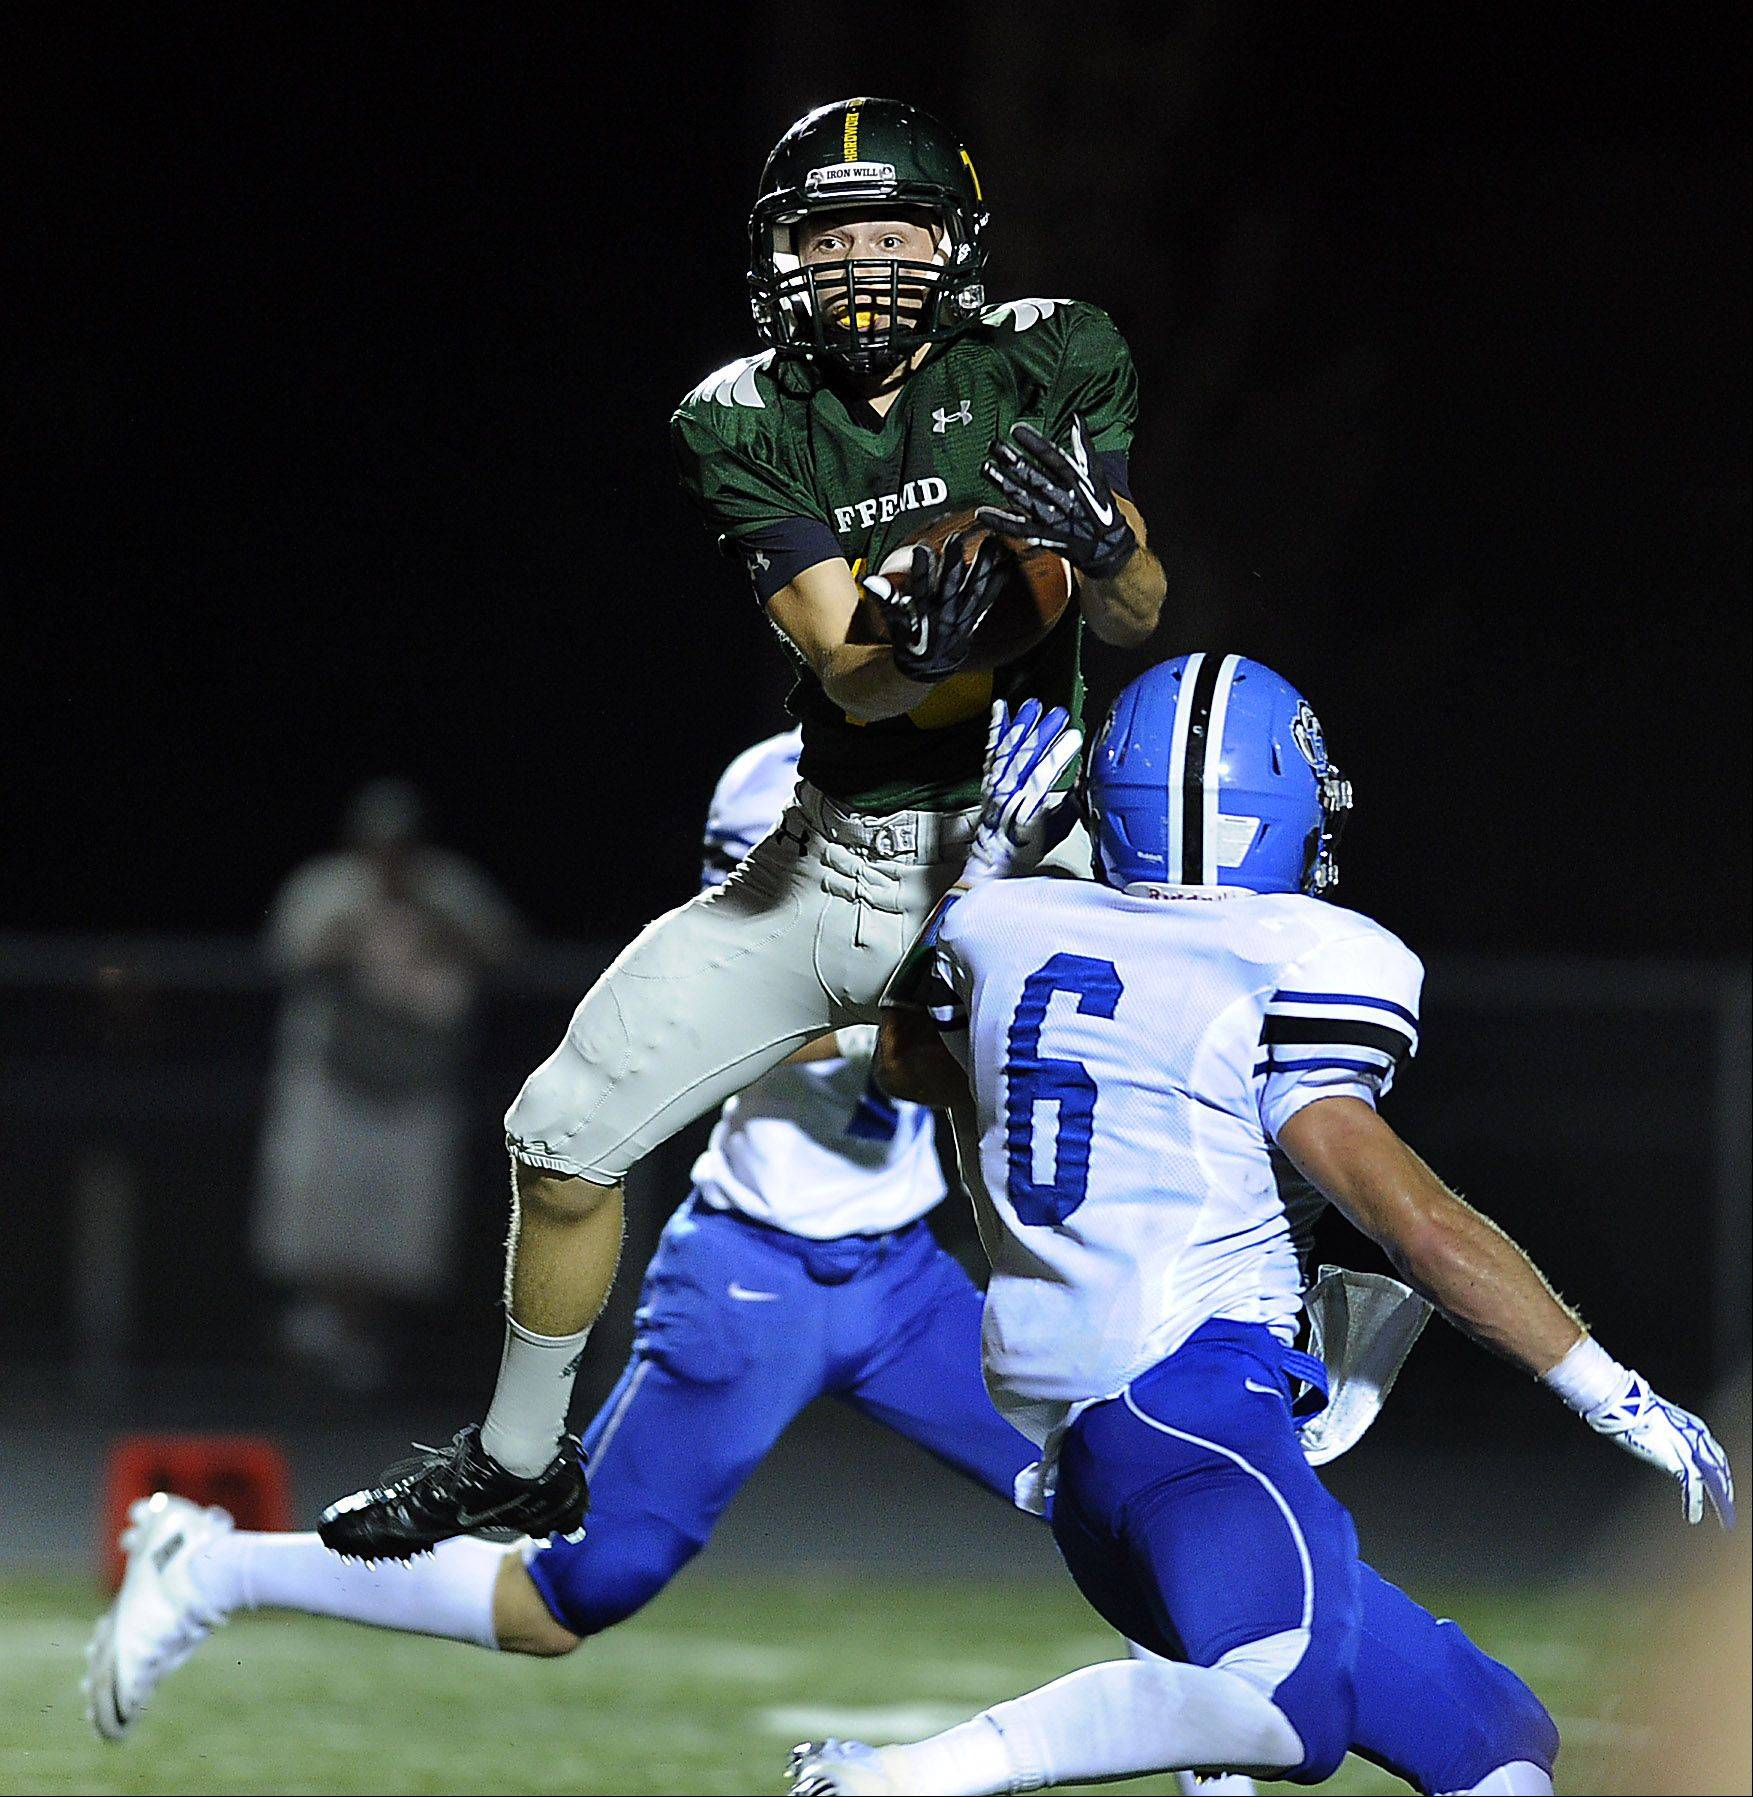 Fremd's Anthony Halvorsen hauls in a pass despite the effort of Lake Zurich's Sean Lynch on Friday at Fremd.